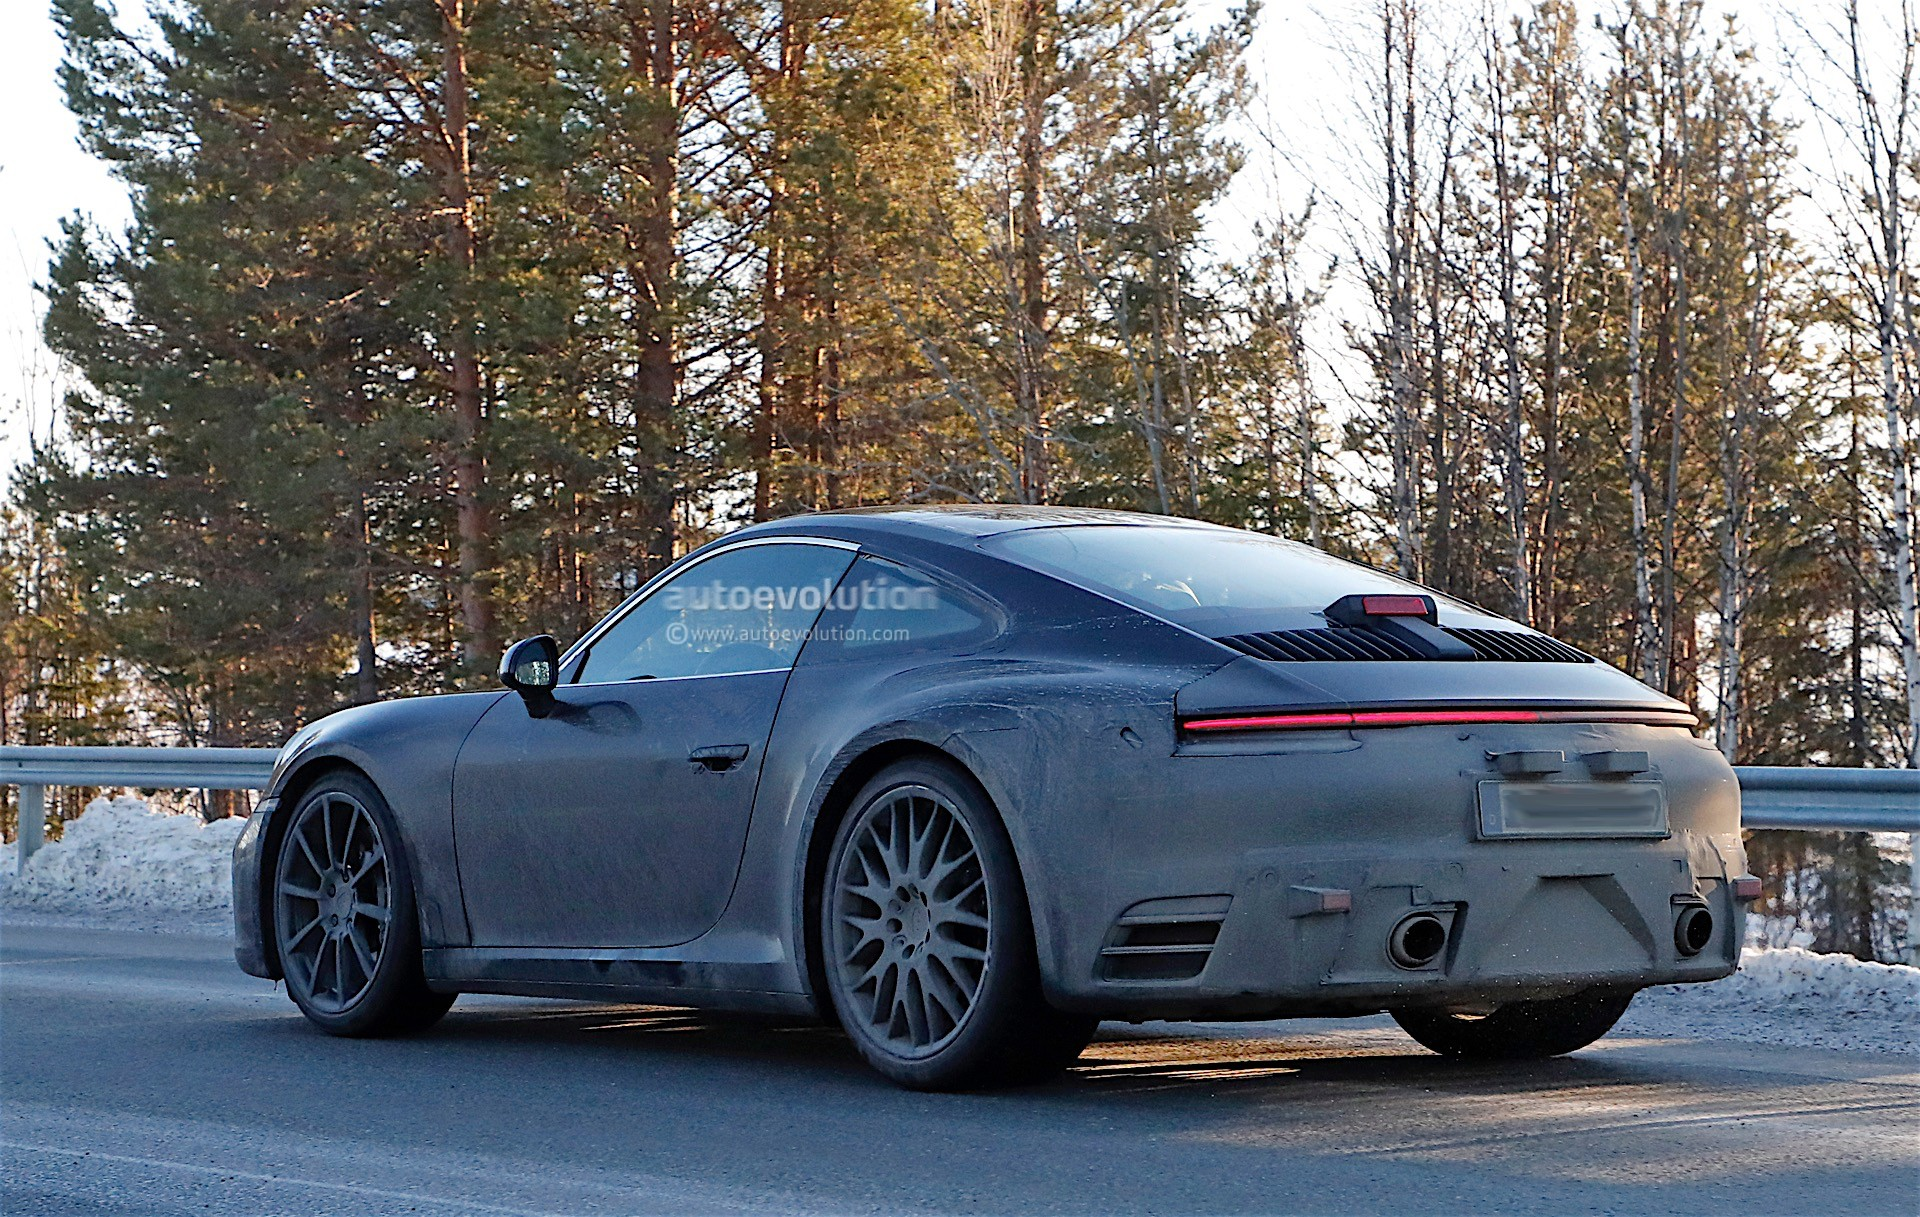 spy-photos-porsche-911-992-poses-with-the-spoiler-down-1-and-2-of-12_9